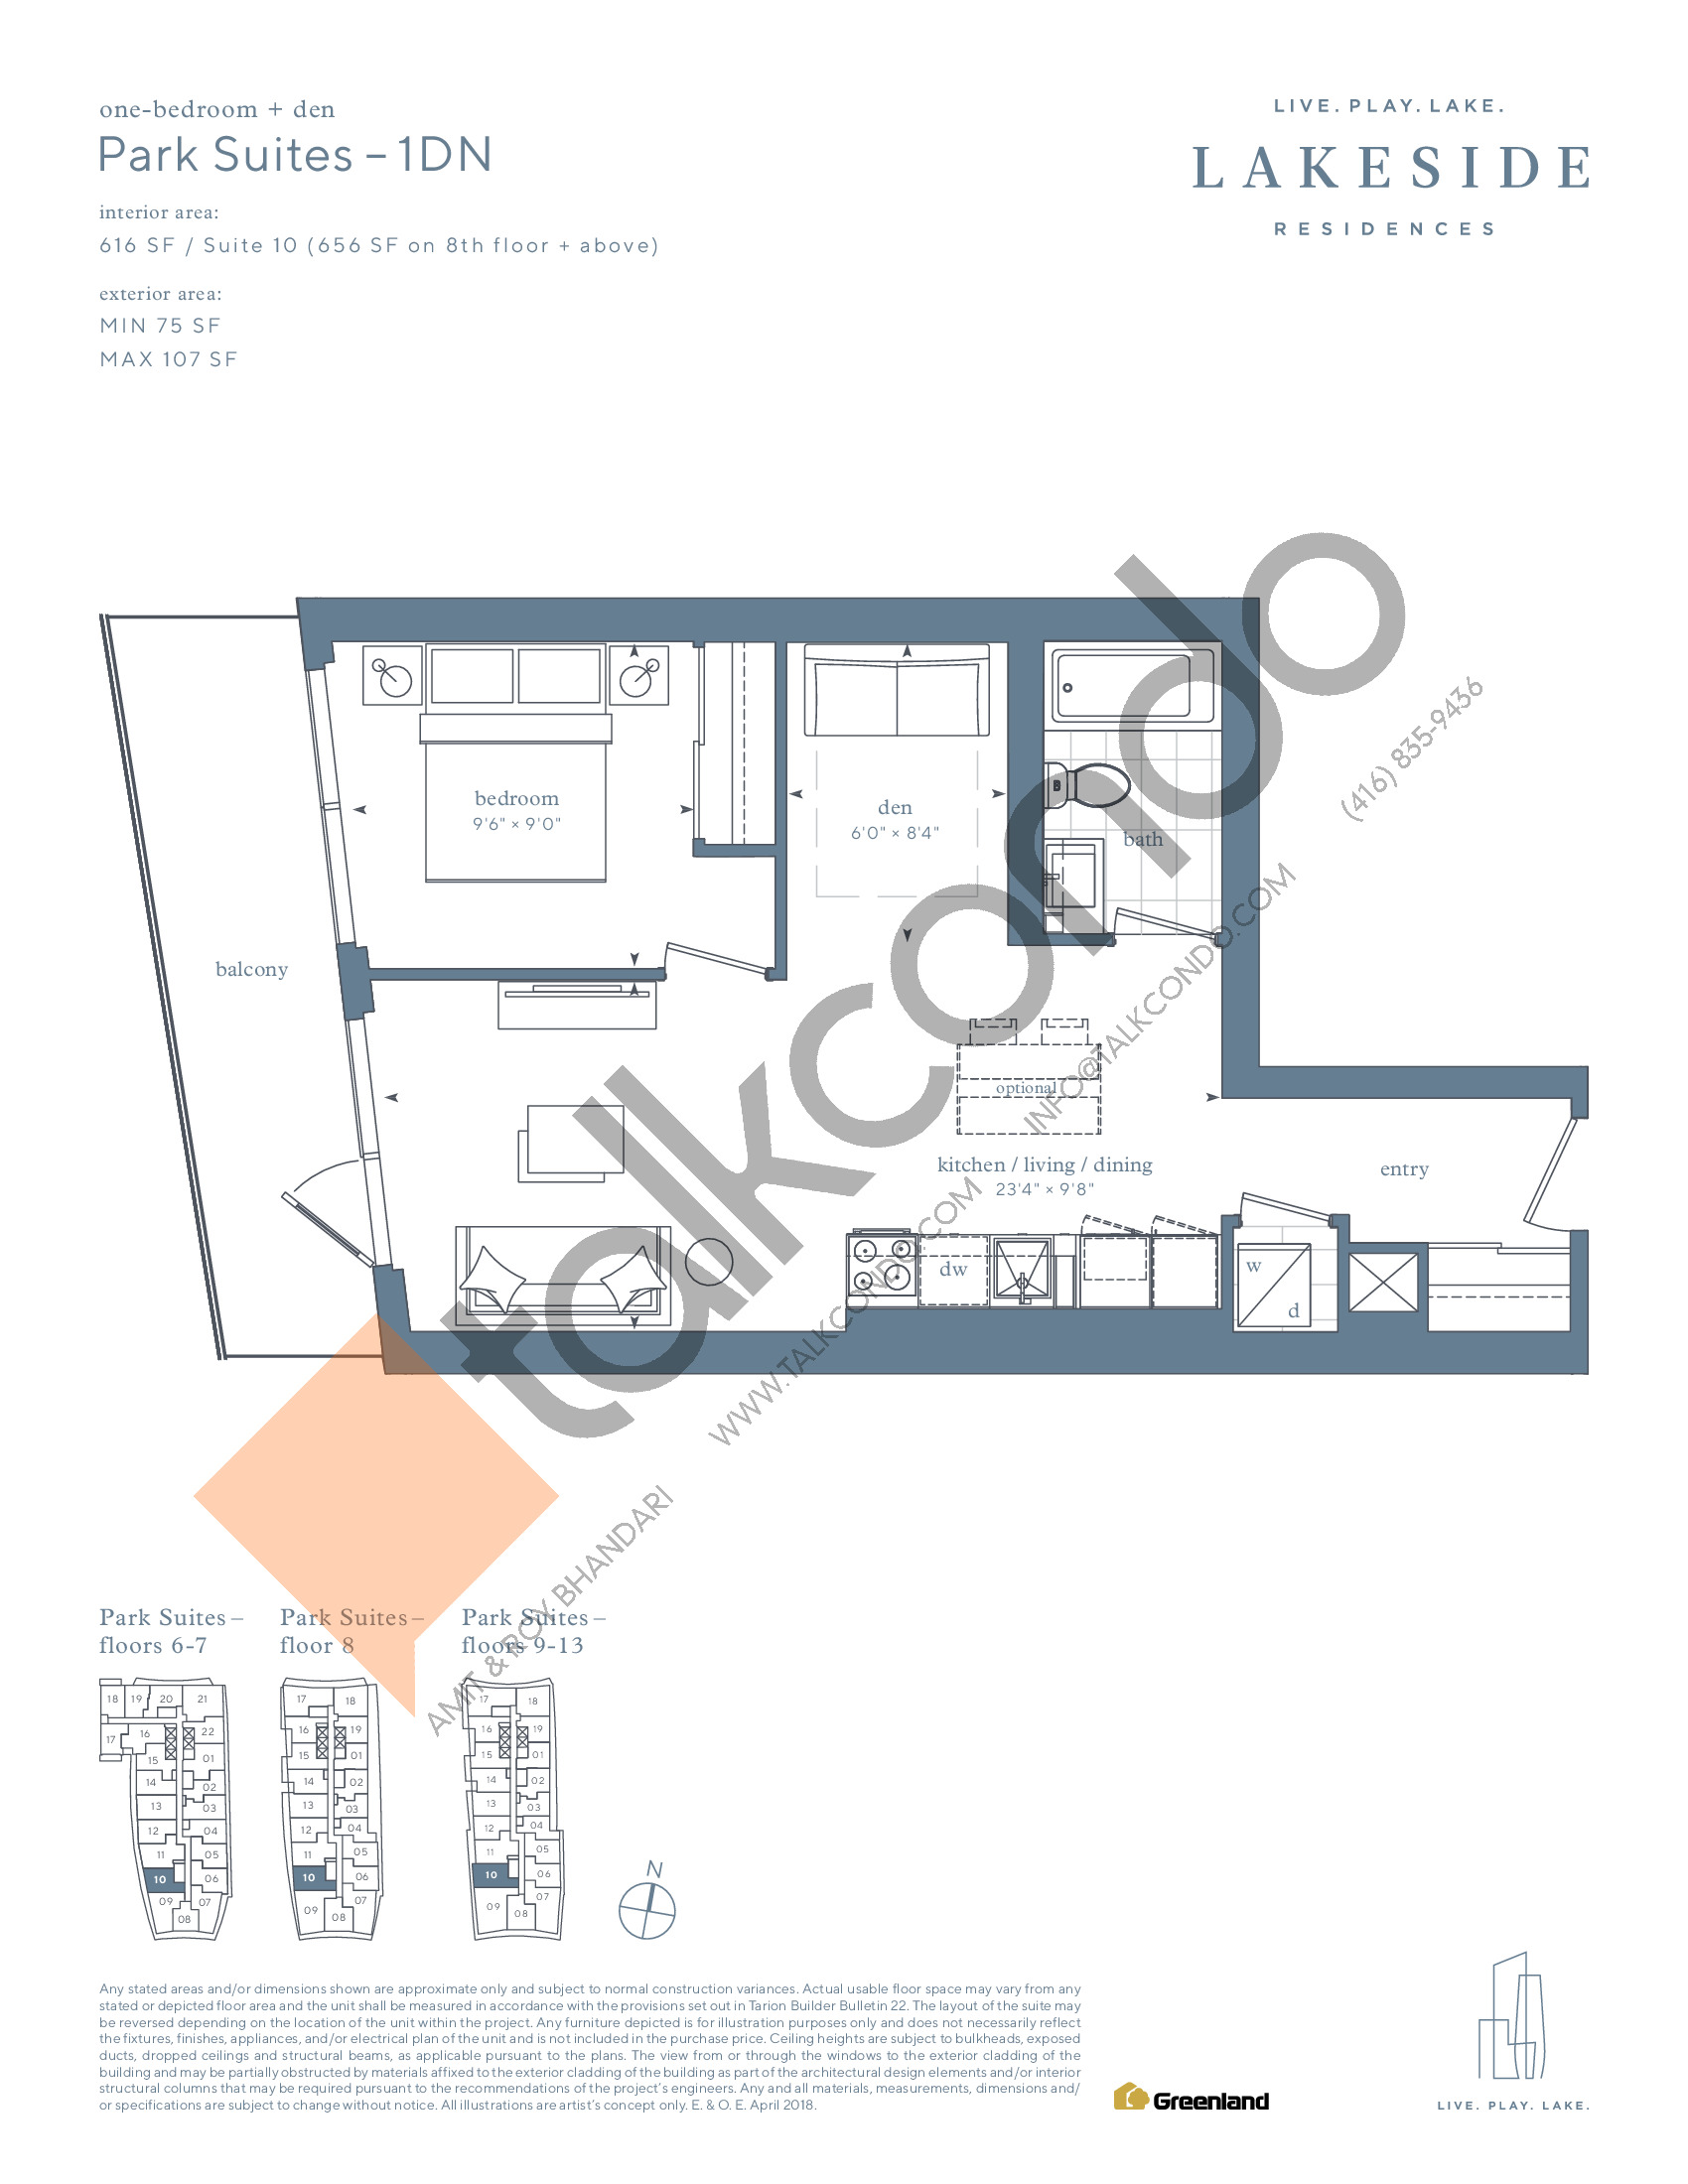 Park Suites - 1DN Floor Plan at Lakeside Residences - 616 sq.ft